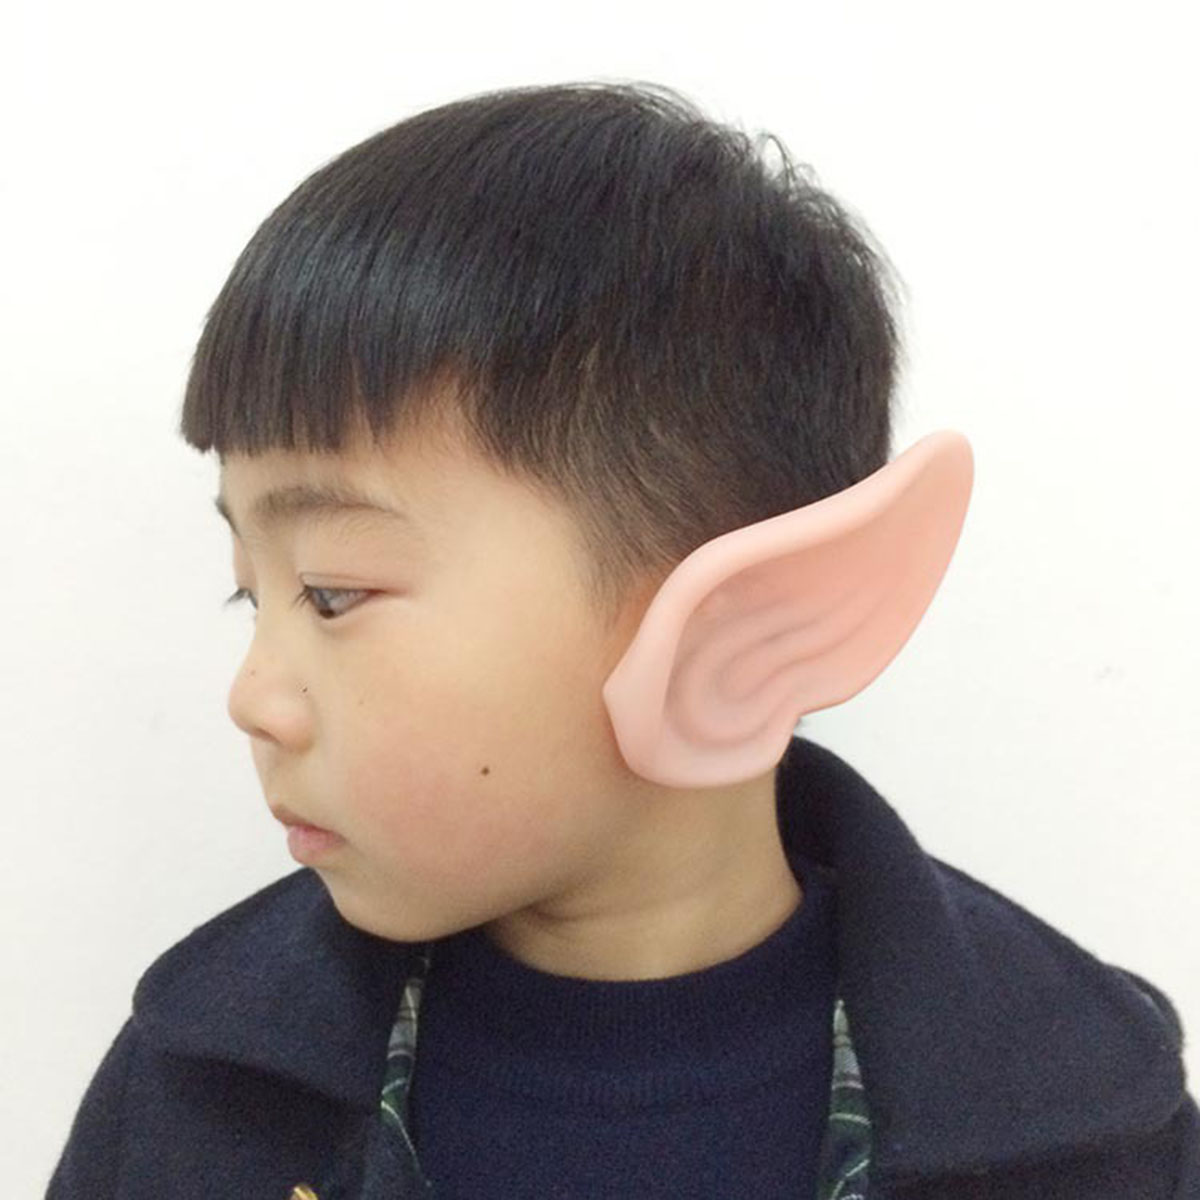 1 Pair PVC Fairy Pixie Fake Elf Ears Halloween Mask New Party Mask Scary Halloween Decoration Soft Pointed Prosthetic Ears 10c 3